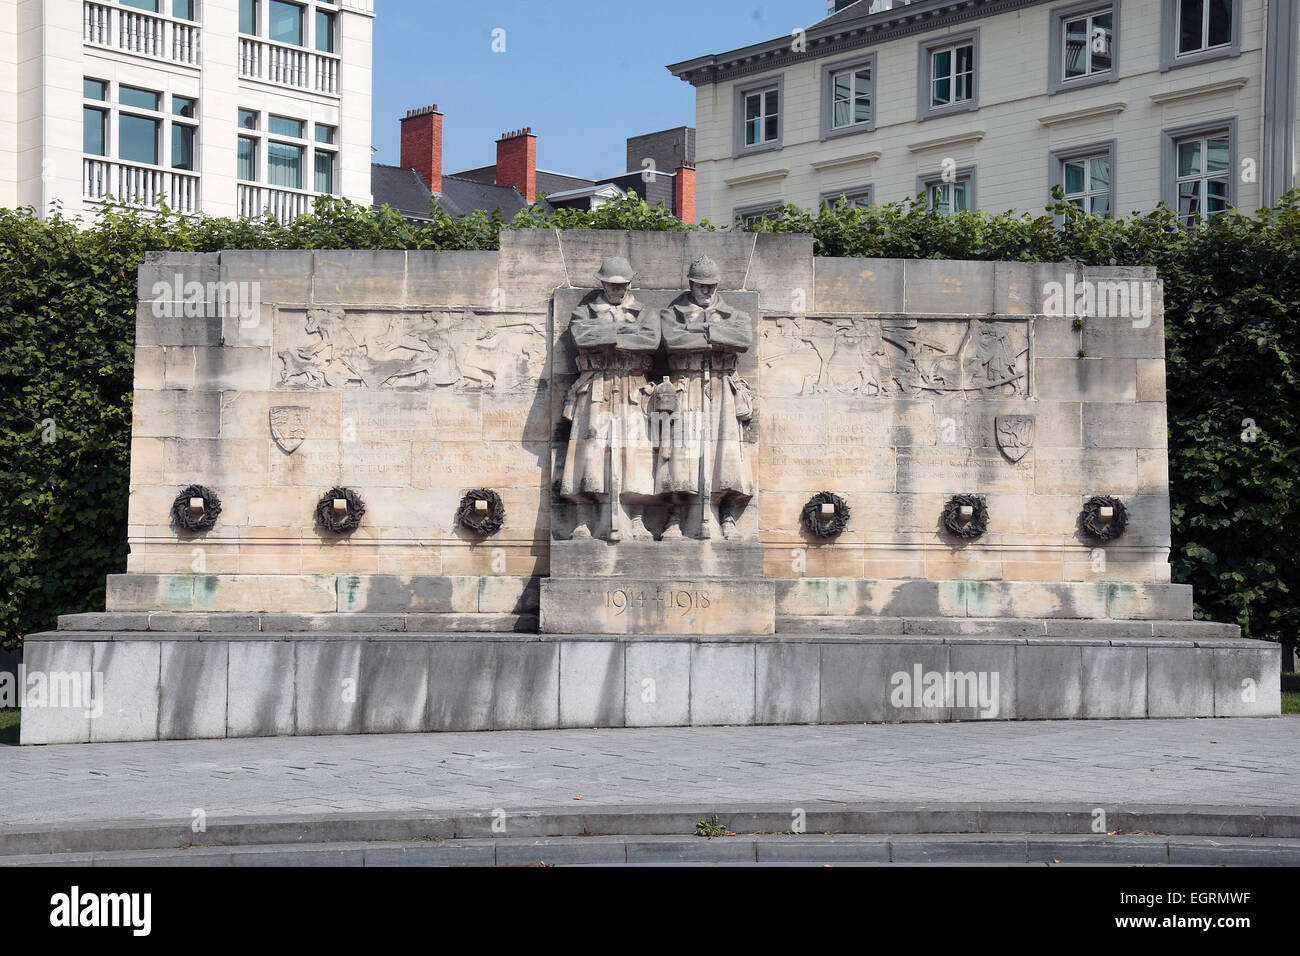 The Anglo-Belgian Memorial commemorates the co-operation between Great Britain and Belgium in WWI in Brussels, Belgium. - Stock Image